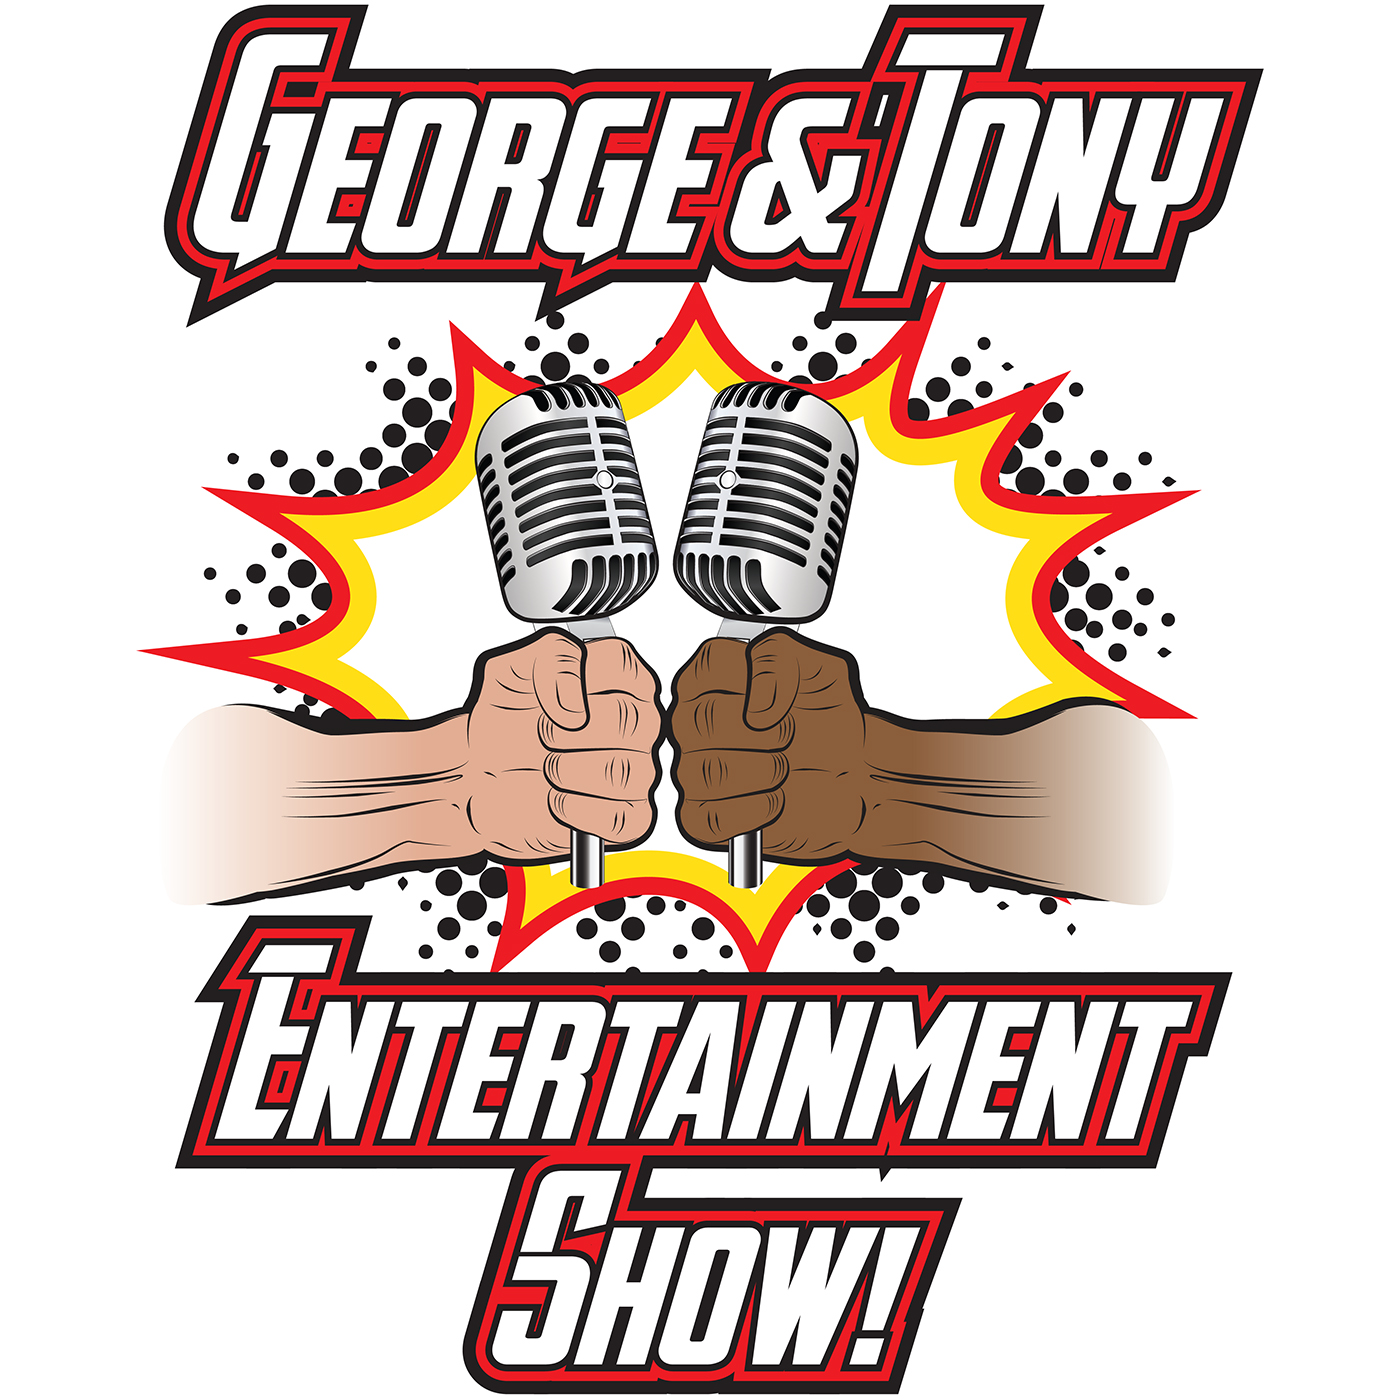 George and Tony Entertainment Show #36